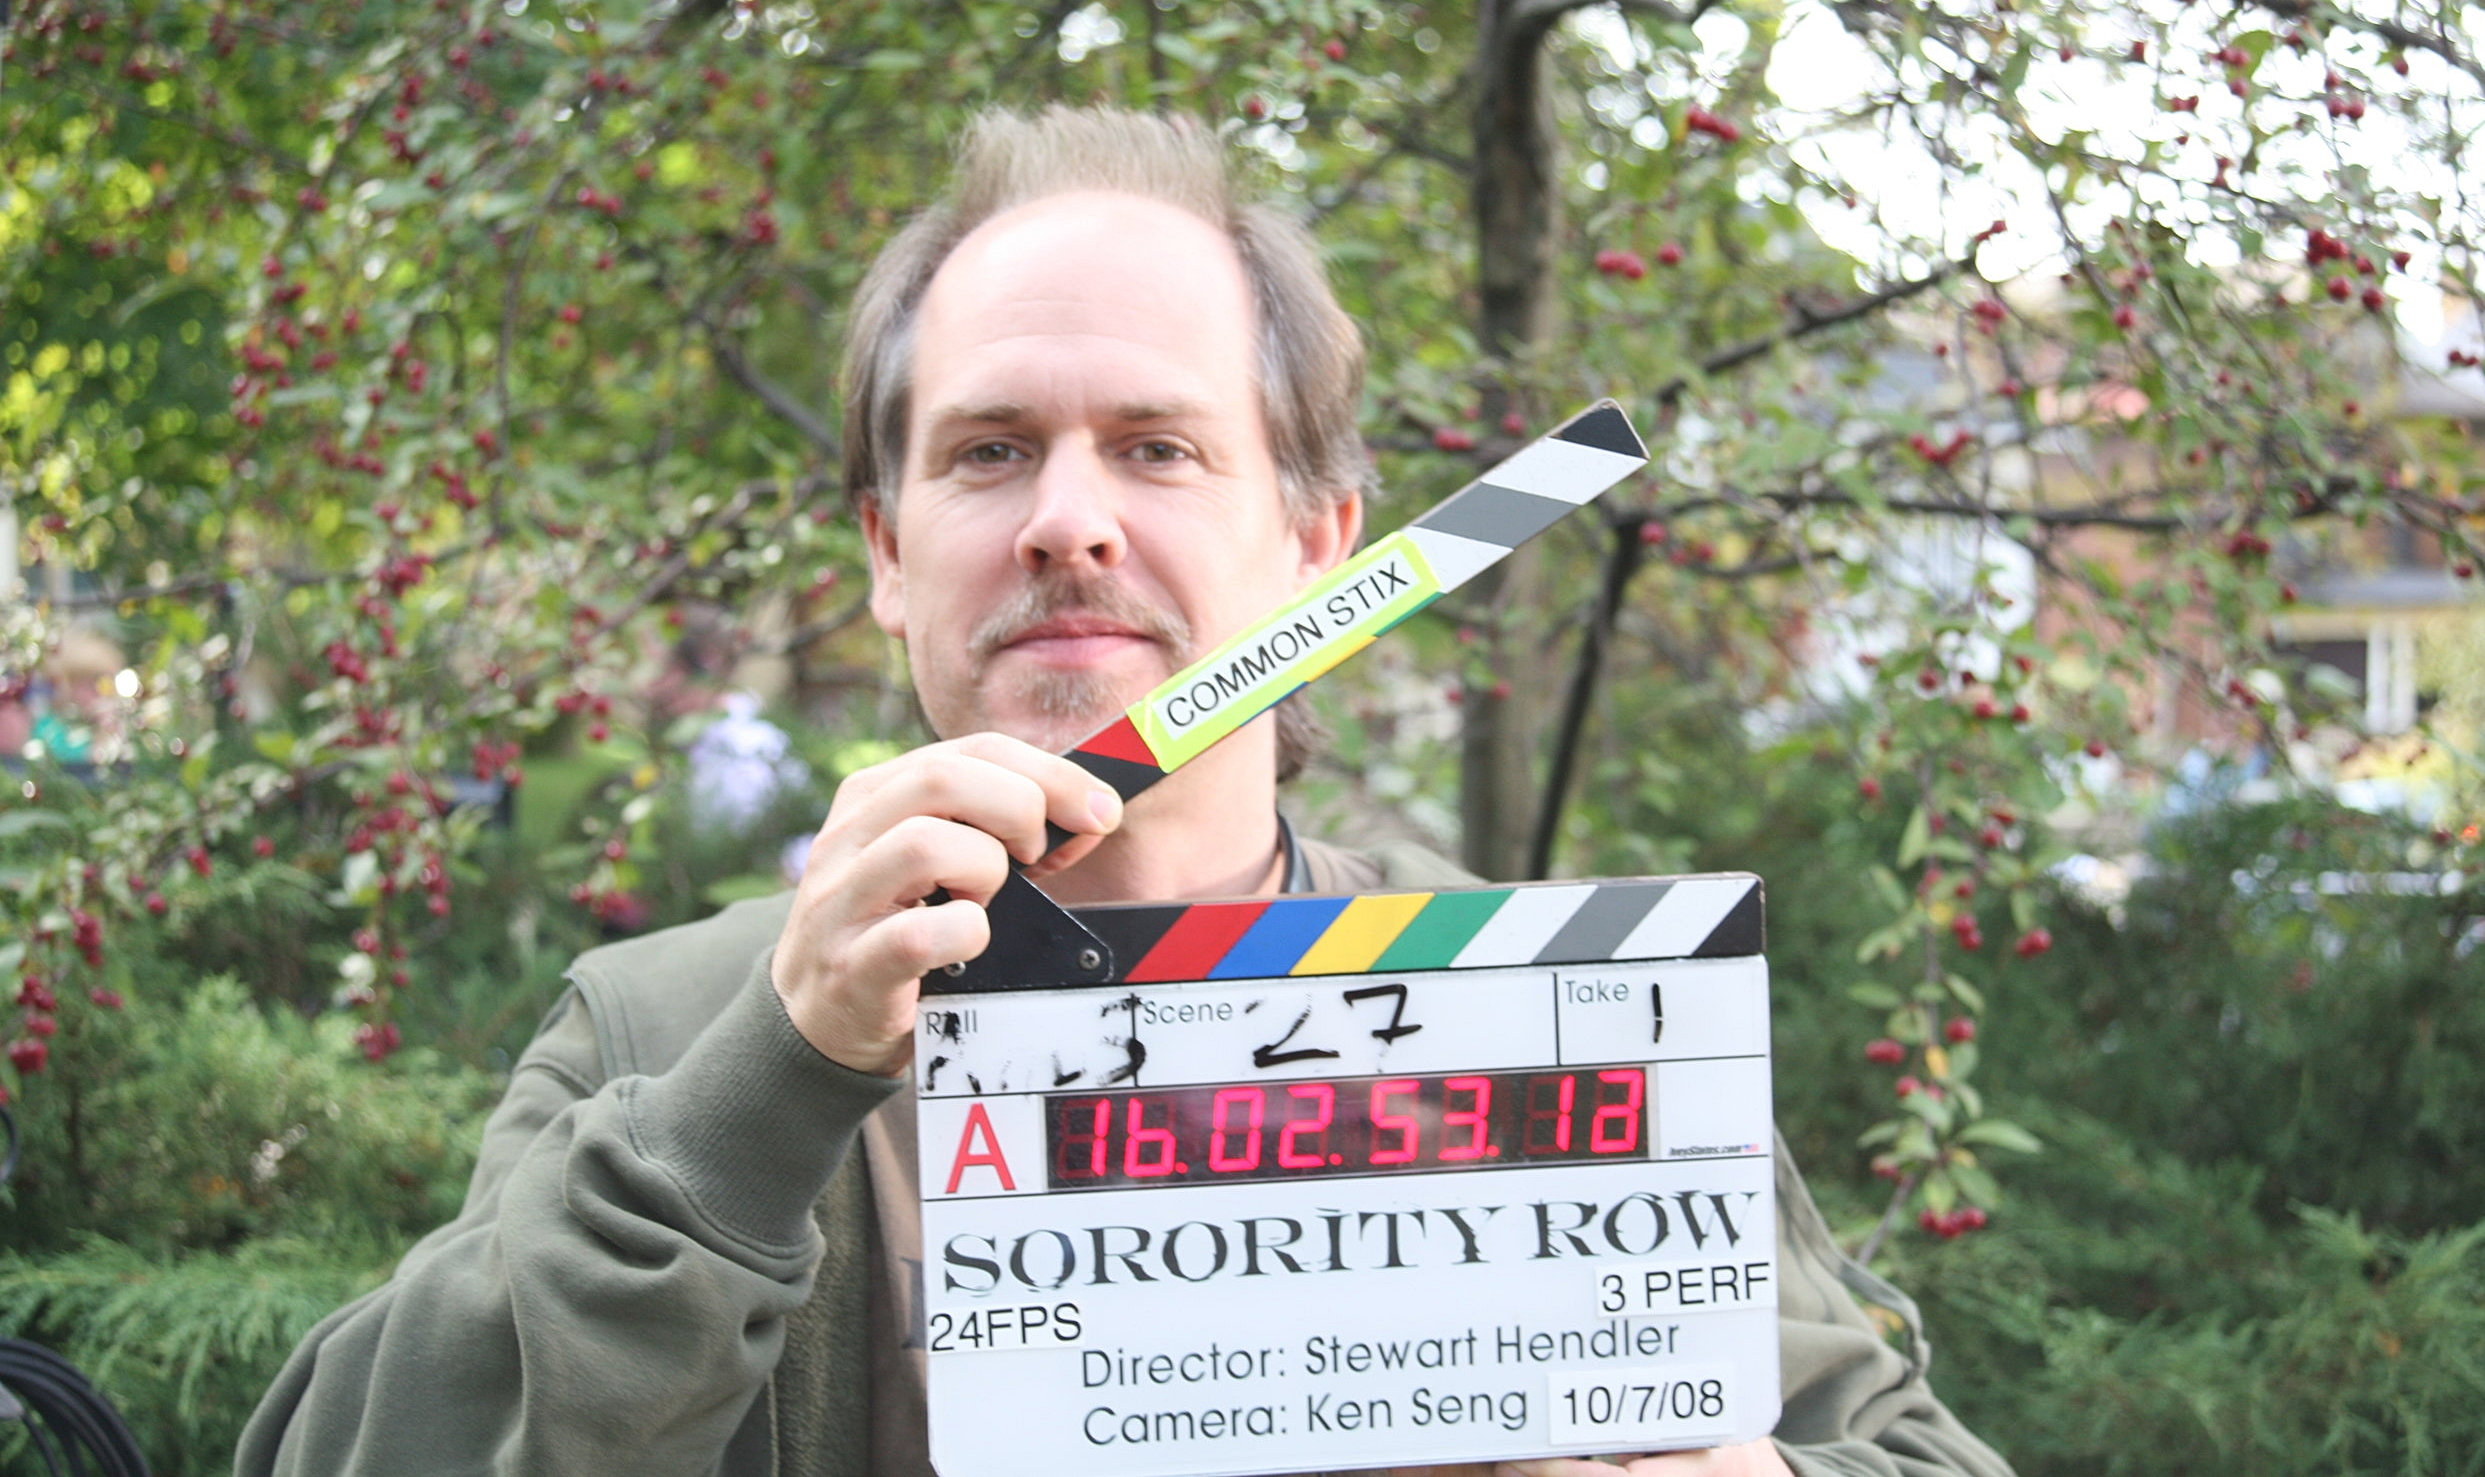 Slowing down production on Sorority Row by dorkily posing with the sticks.